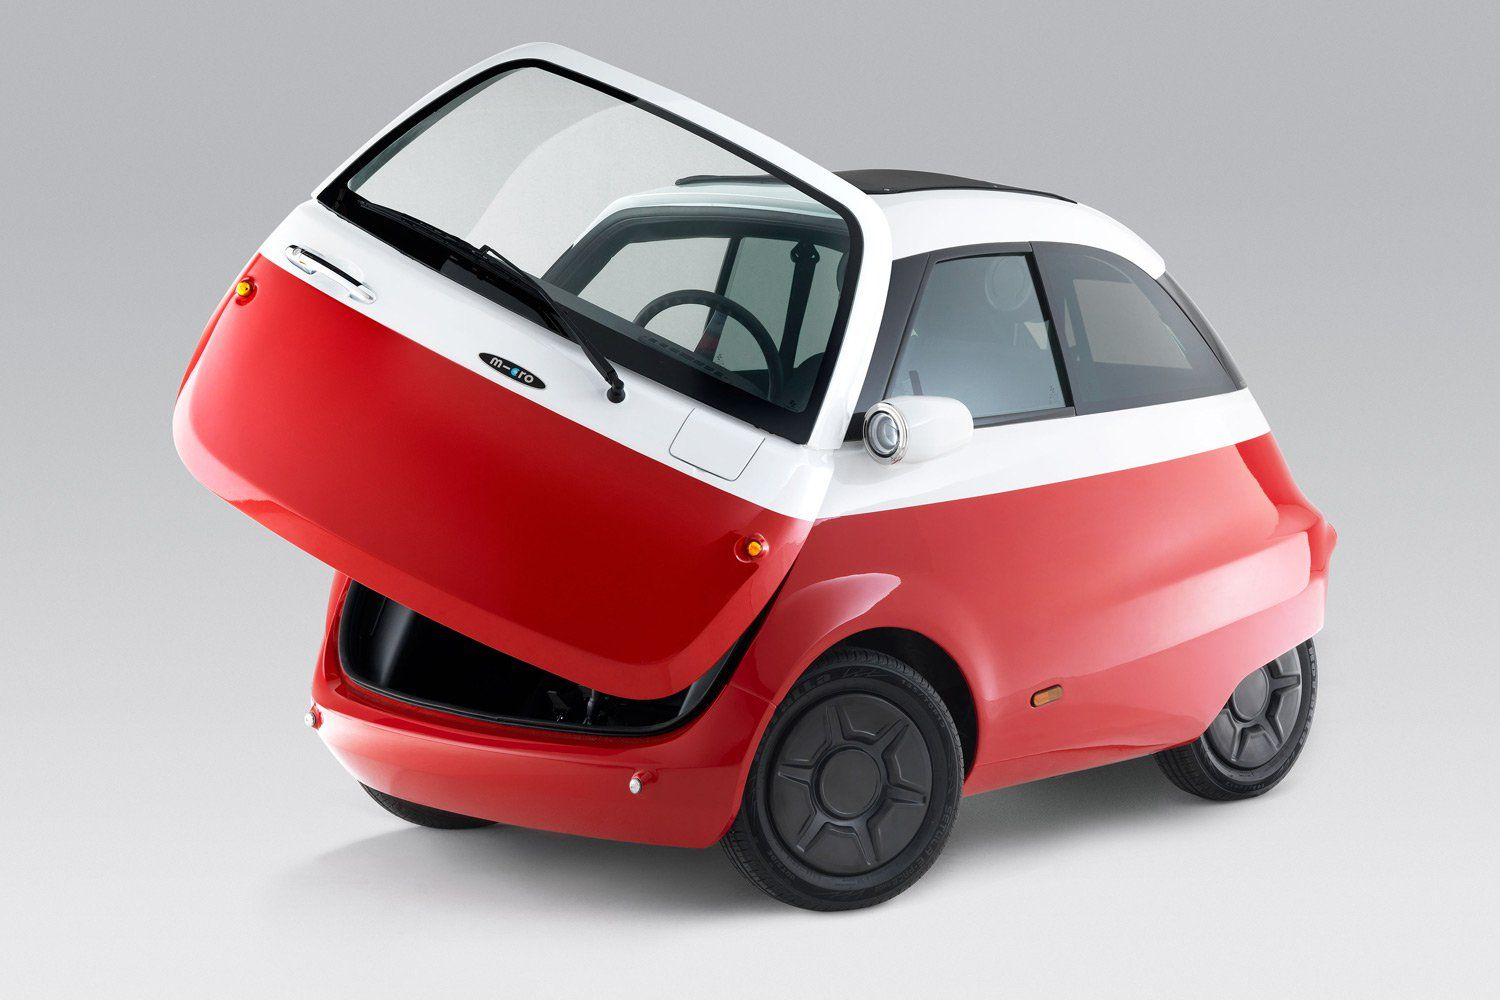 The Microlino A Front Loading Super Compact Vehicle From Swiss Mobility Company Micro Has Just Been Approved For European Street Bmw Isetta Isetta Ford Truck